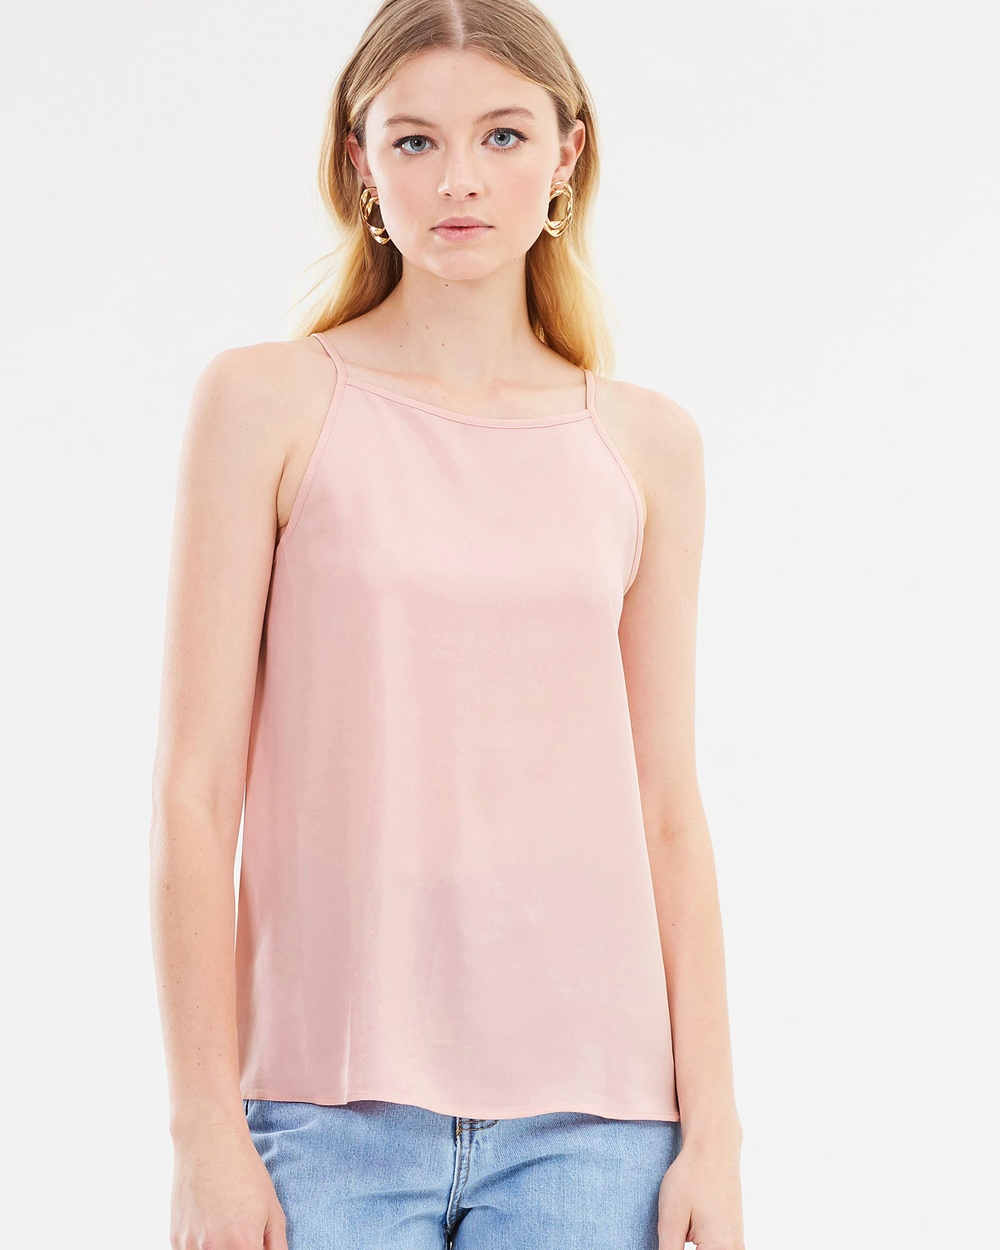 Warehouse High Neck Cami Tops Light Pink High Neck Cami